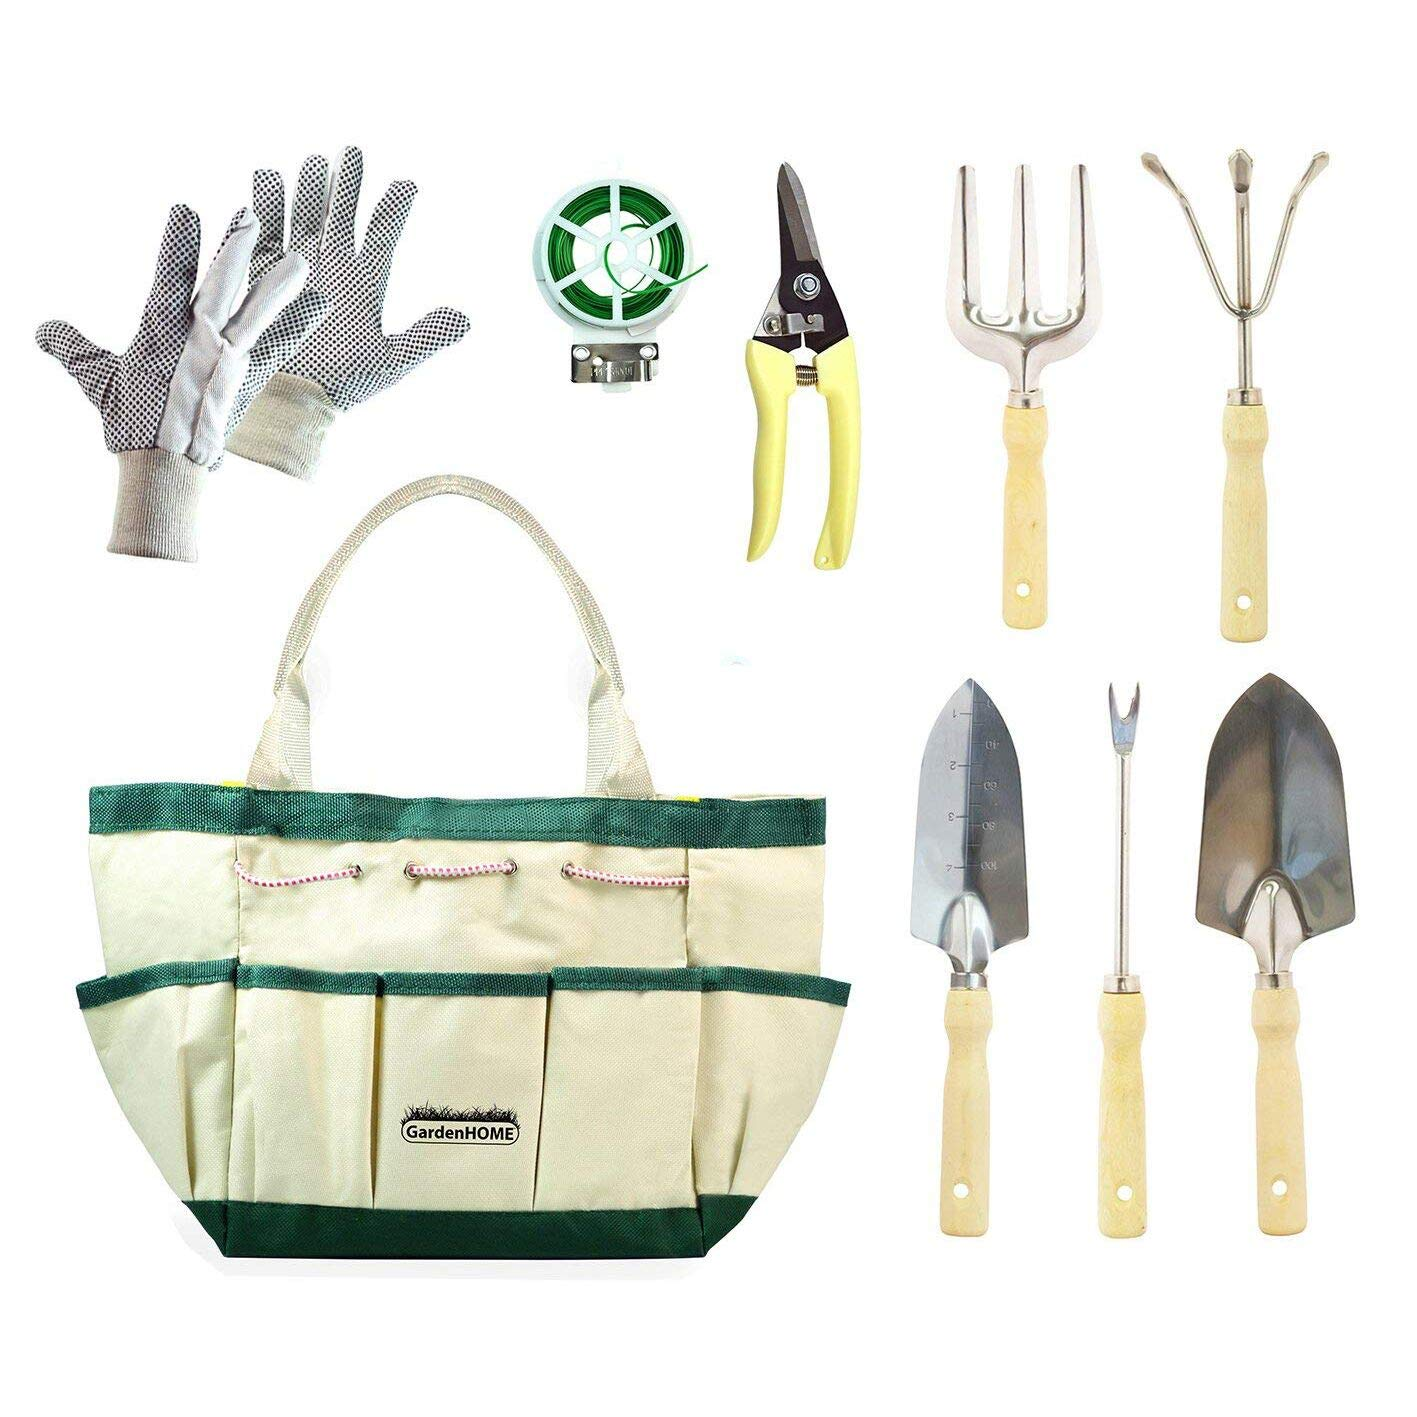 GardenHOME 9 Piece Garden Tool Set, Stainless Steel, includes Lightweight 5 Stainless Steel Tools, Gloves, Pruner, Plant Twist Tie and Storage Bag